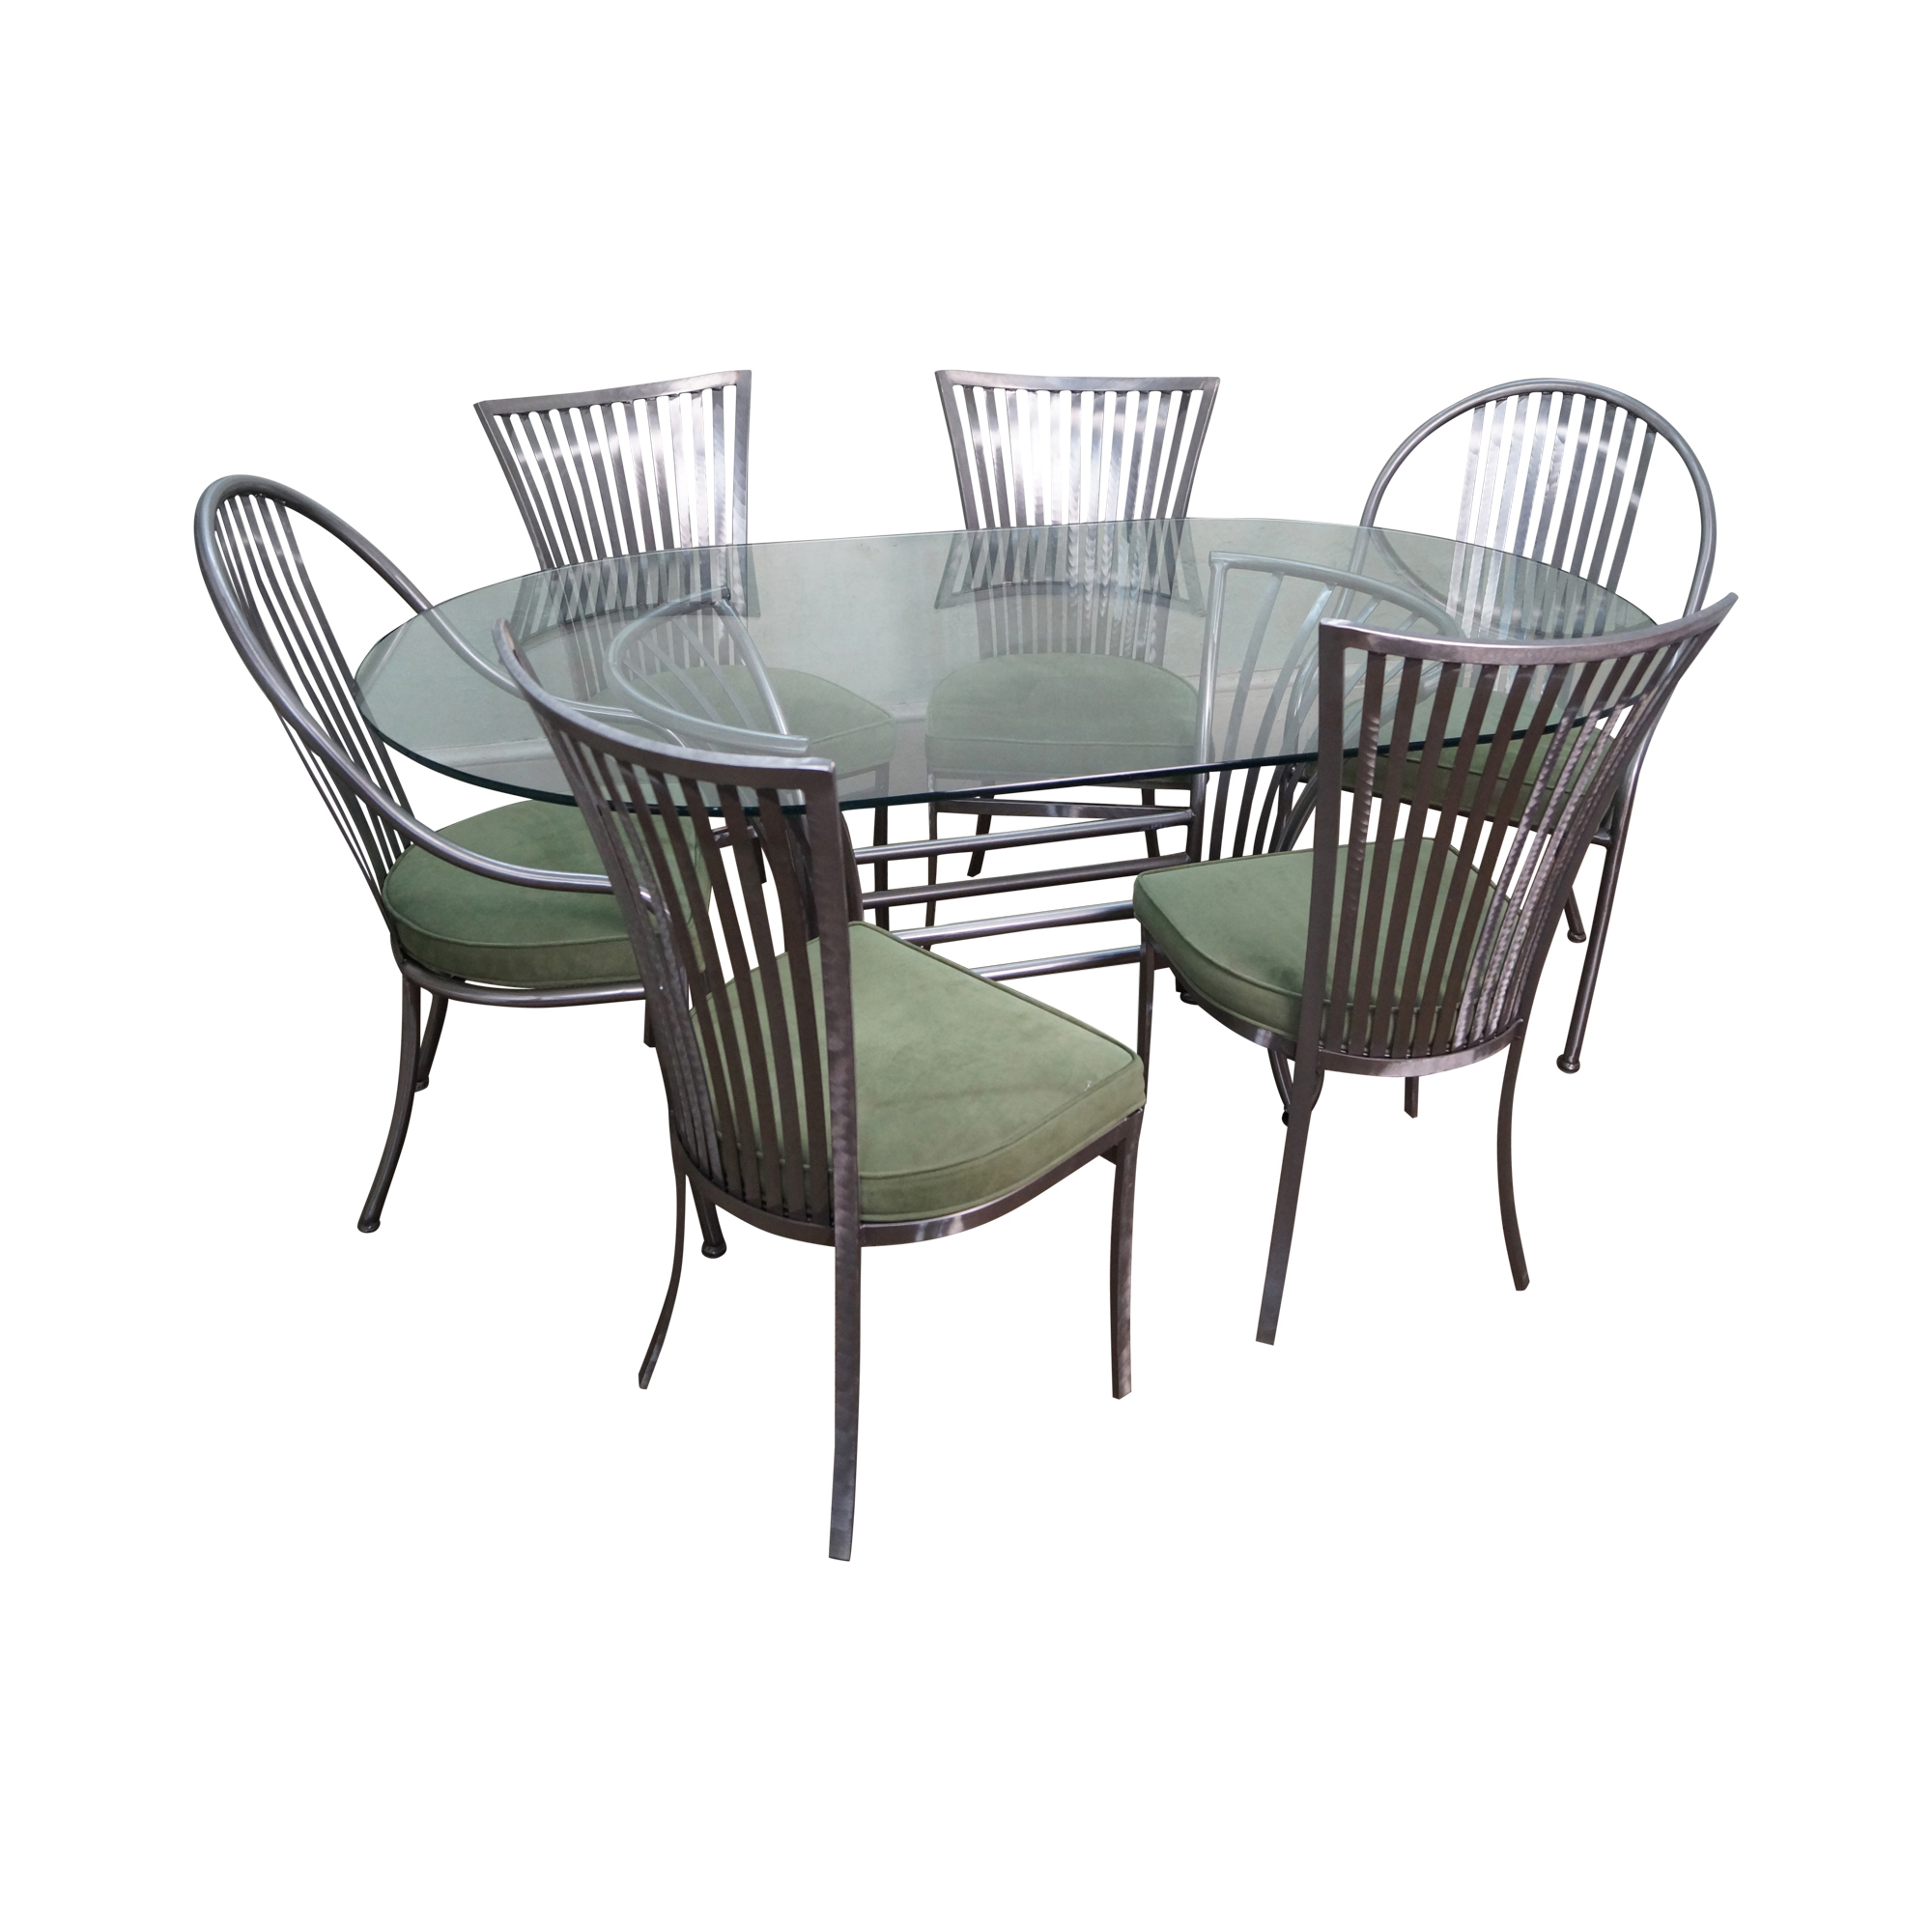 Pleasant Shaver Howard Steel Dining Set Bralicious Painted Fabric Chair Ideas Braliciousco